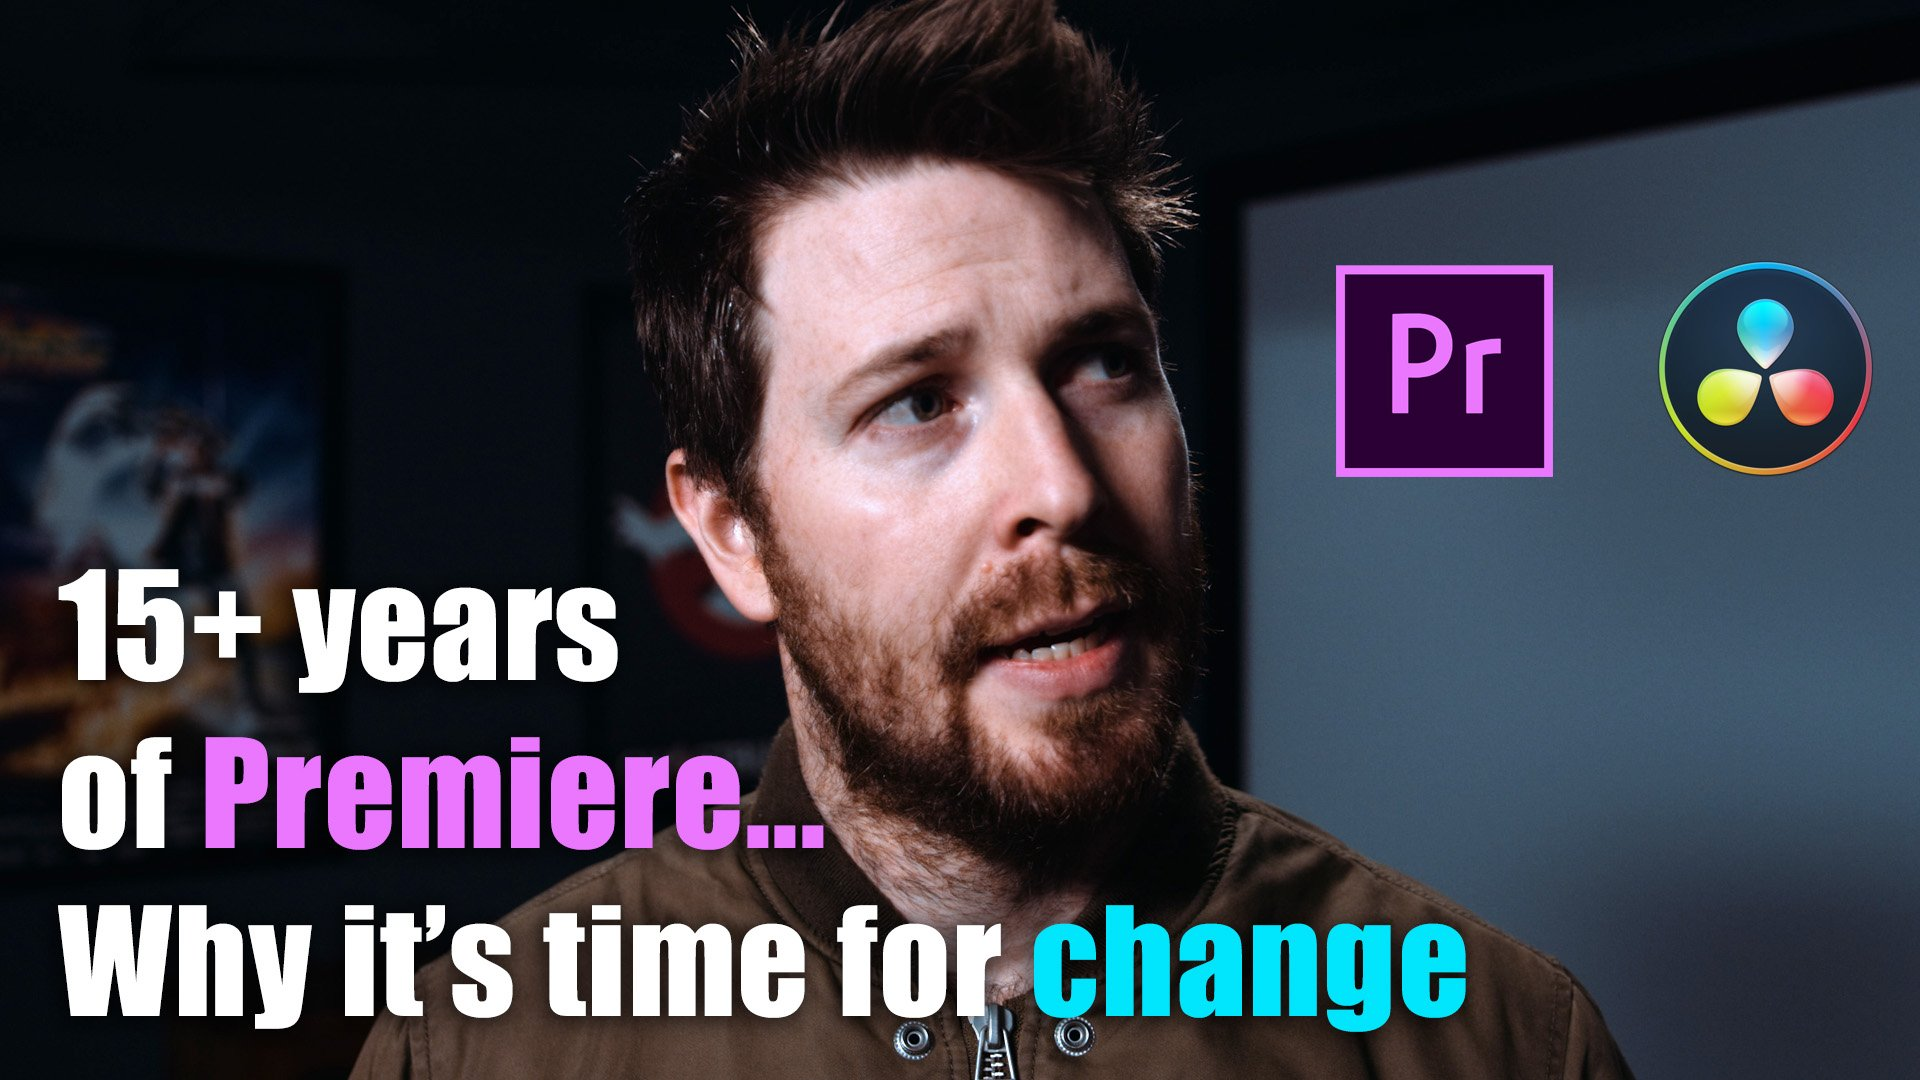 Why and how we may be leaving Adobe Premiere Pro after 15+ years